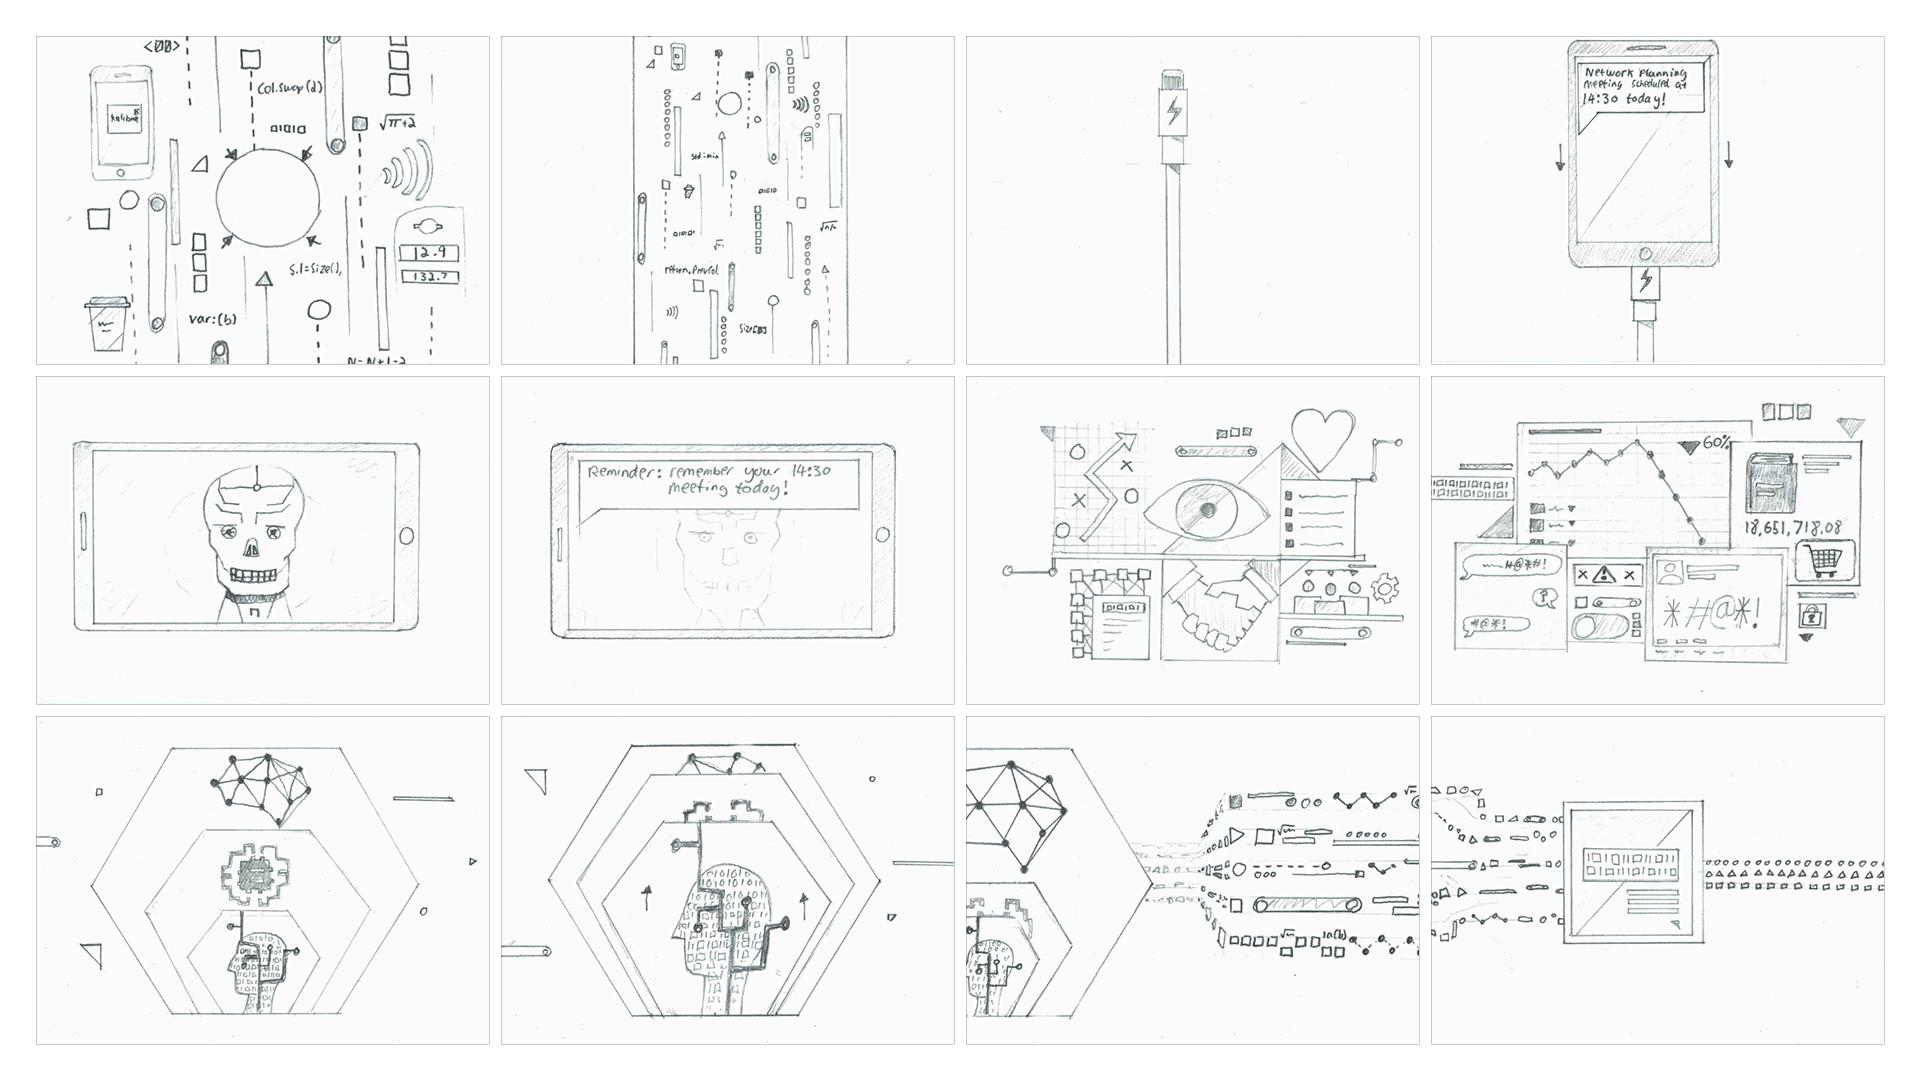 storyboard for tech company animation kalibrate